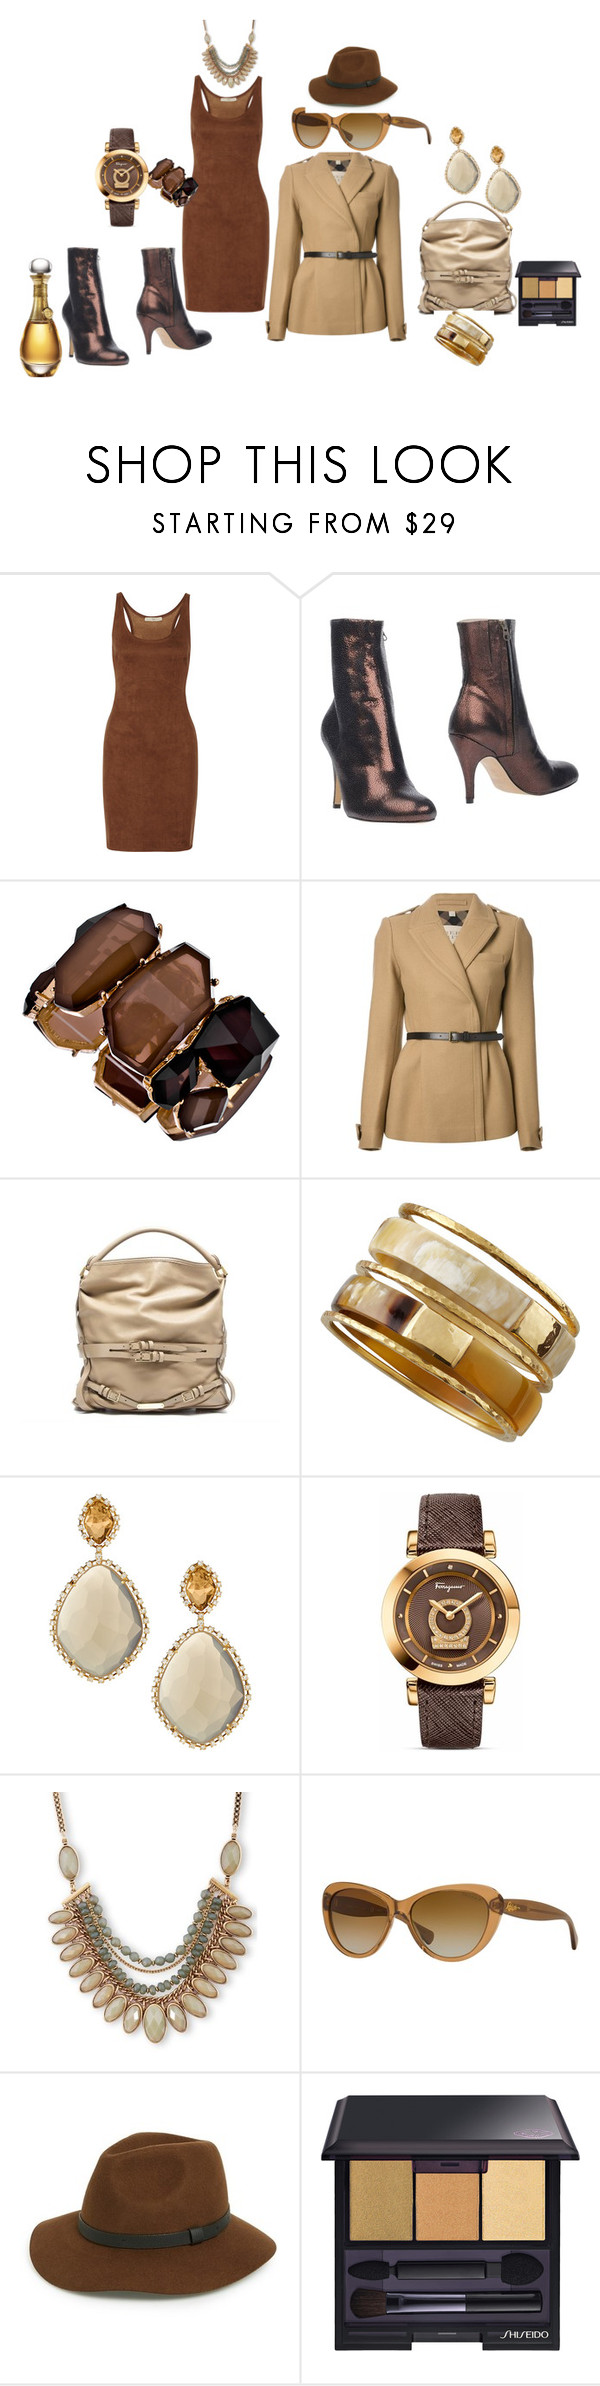 """""""Meetings All Day"""" by blujay1126 ❤ liked on Polyvore featuring Halston Heritage, Nora, Blu Bijoux, Burberry, Ashley Pittman, Vianna B.R.A.S.I.L, Salvatore Ferragamo, Lucky Brand, Ralph Lauren and Sole Society"""